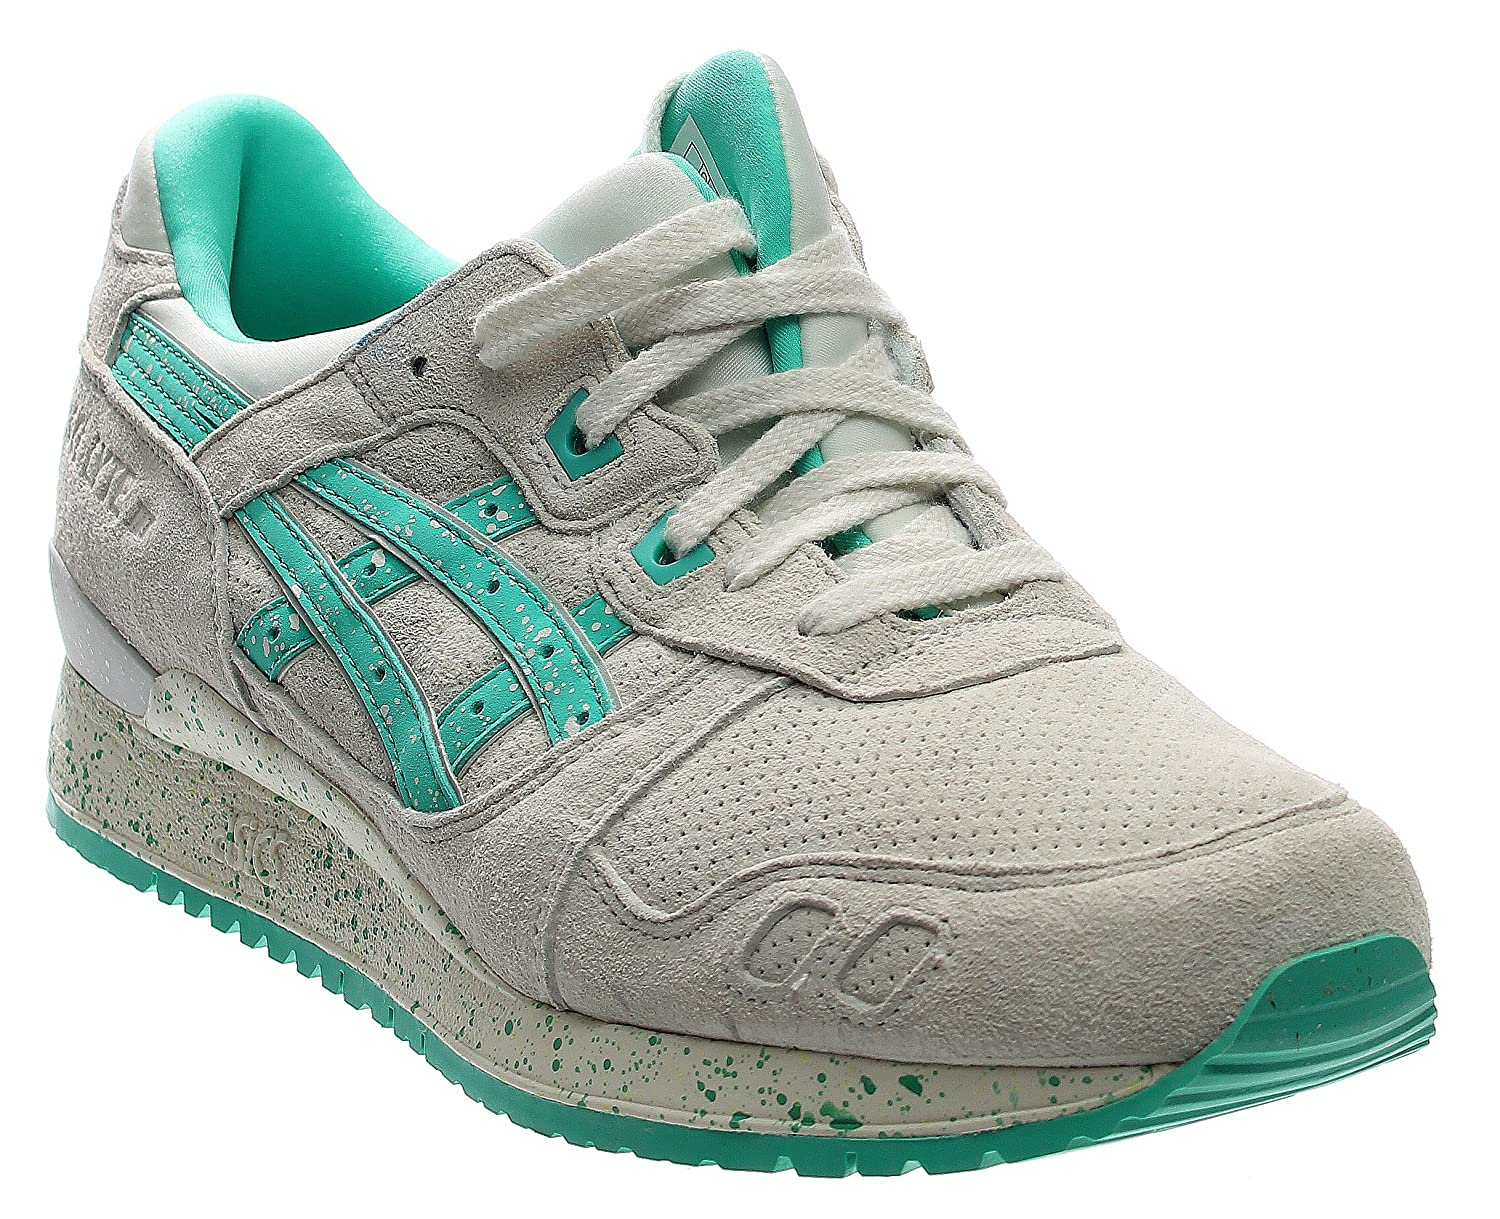 a28ad1cc1b4 Asics Gel-Lyte III Maldives Pack Mens White Leather Lace Up Trainers Shoes   Amazon.co.uk  Shoes   Bags